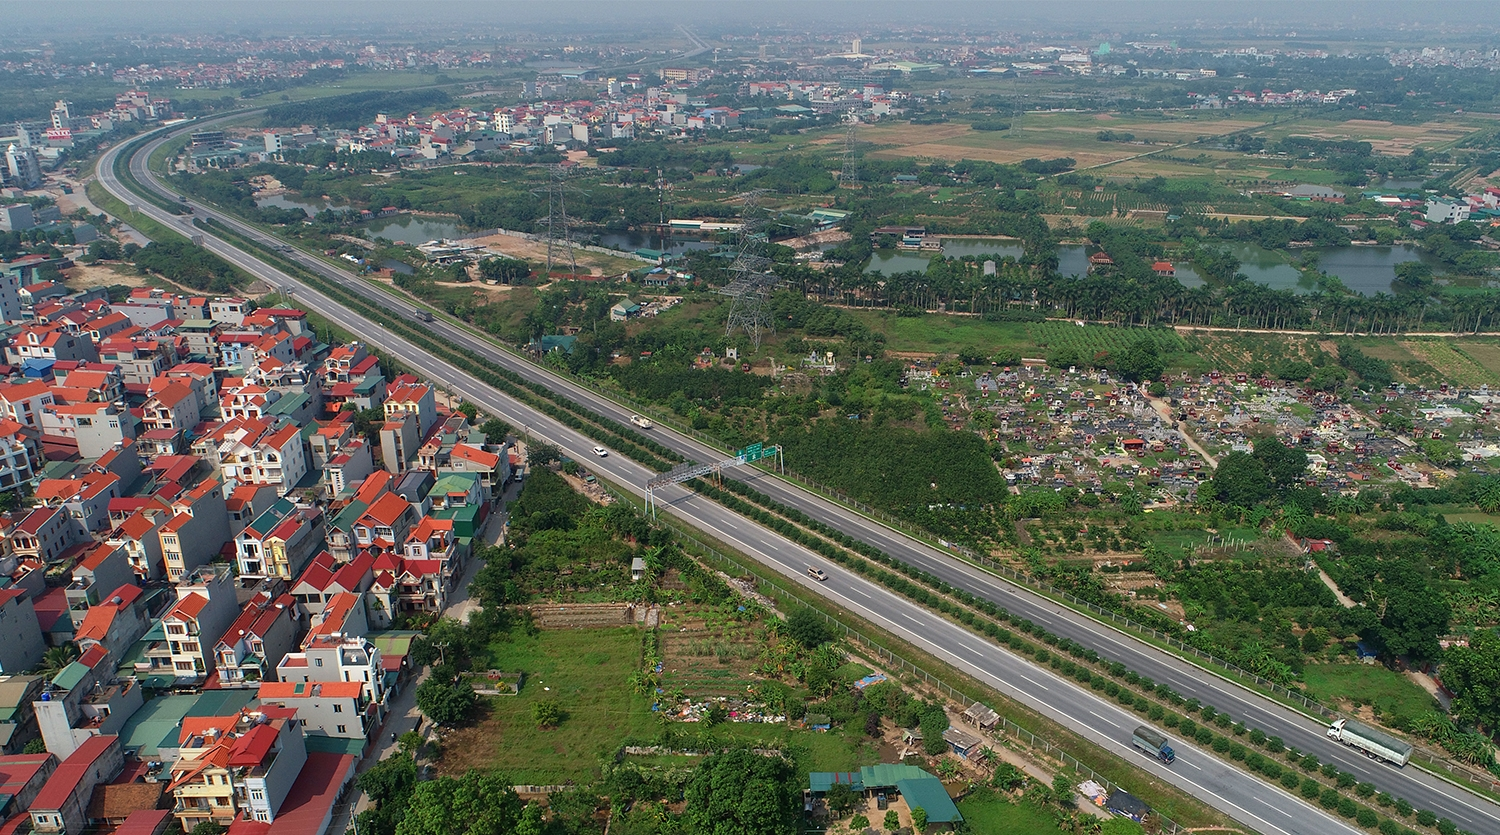 Expressways that burn up the road between Hanoi and northern provinces